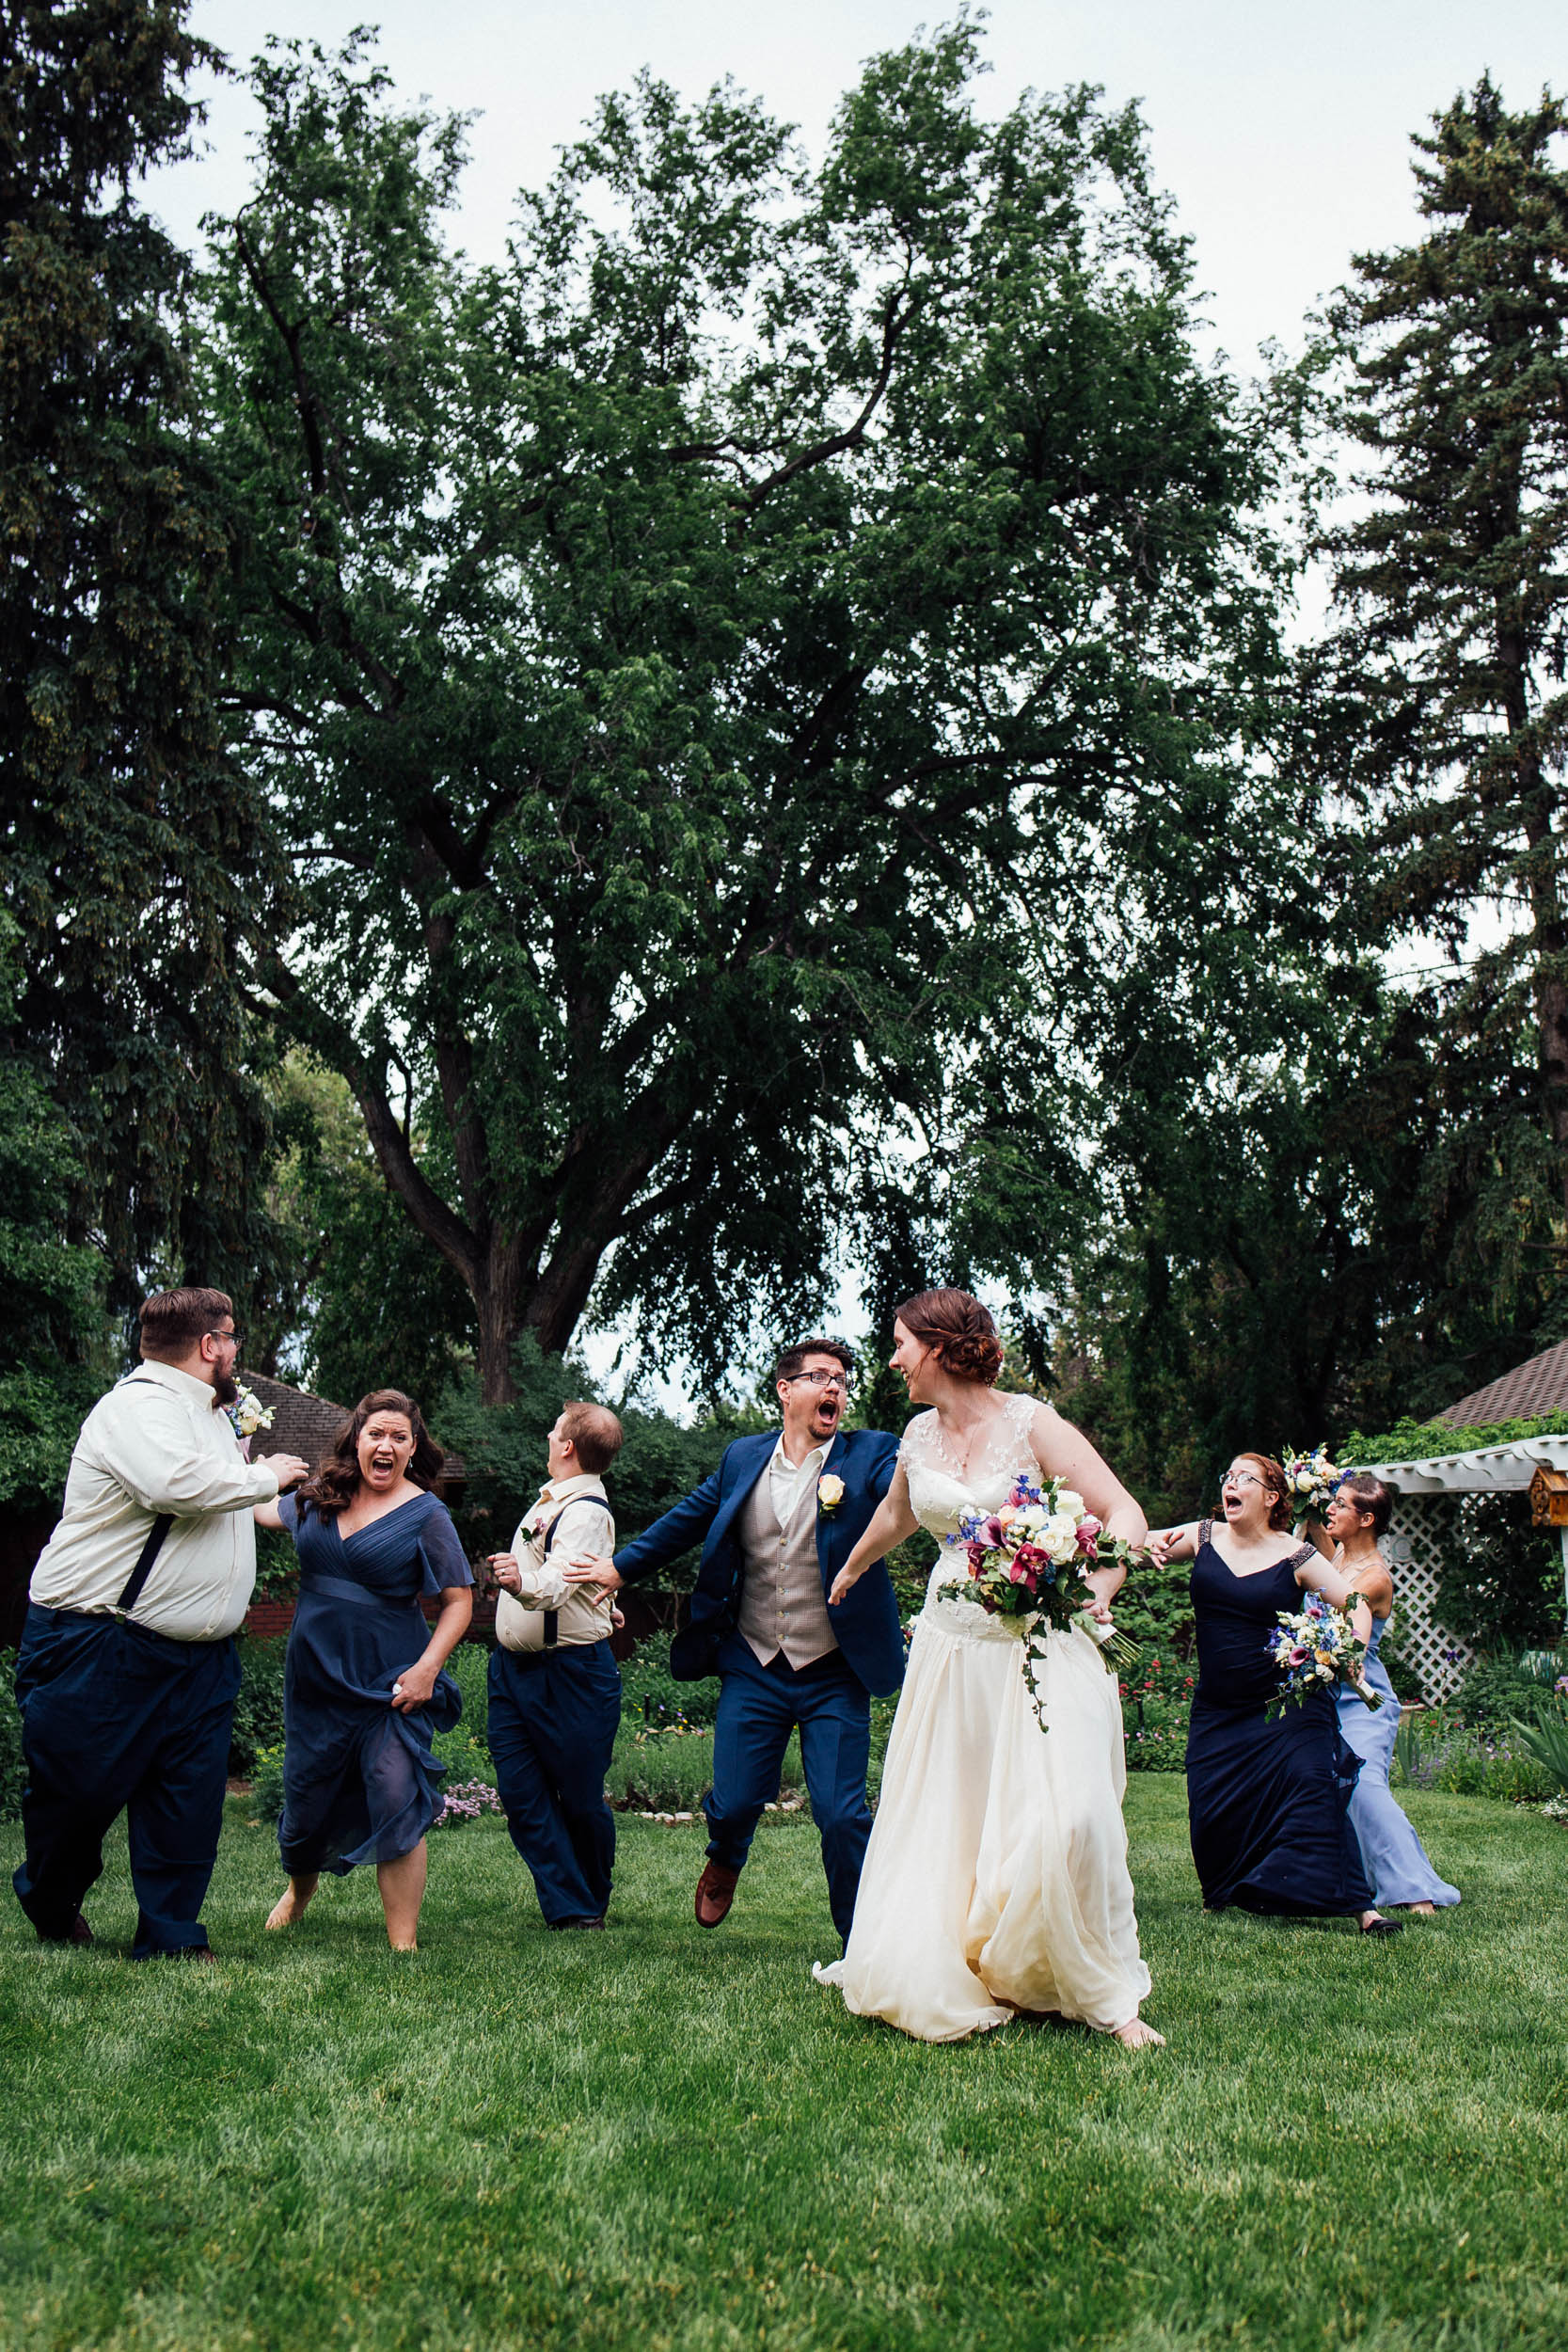 Colorado-Backyard-Wedding-Photographer-50.jpg